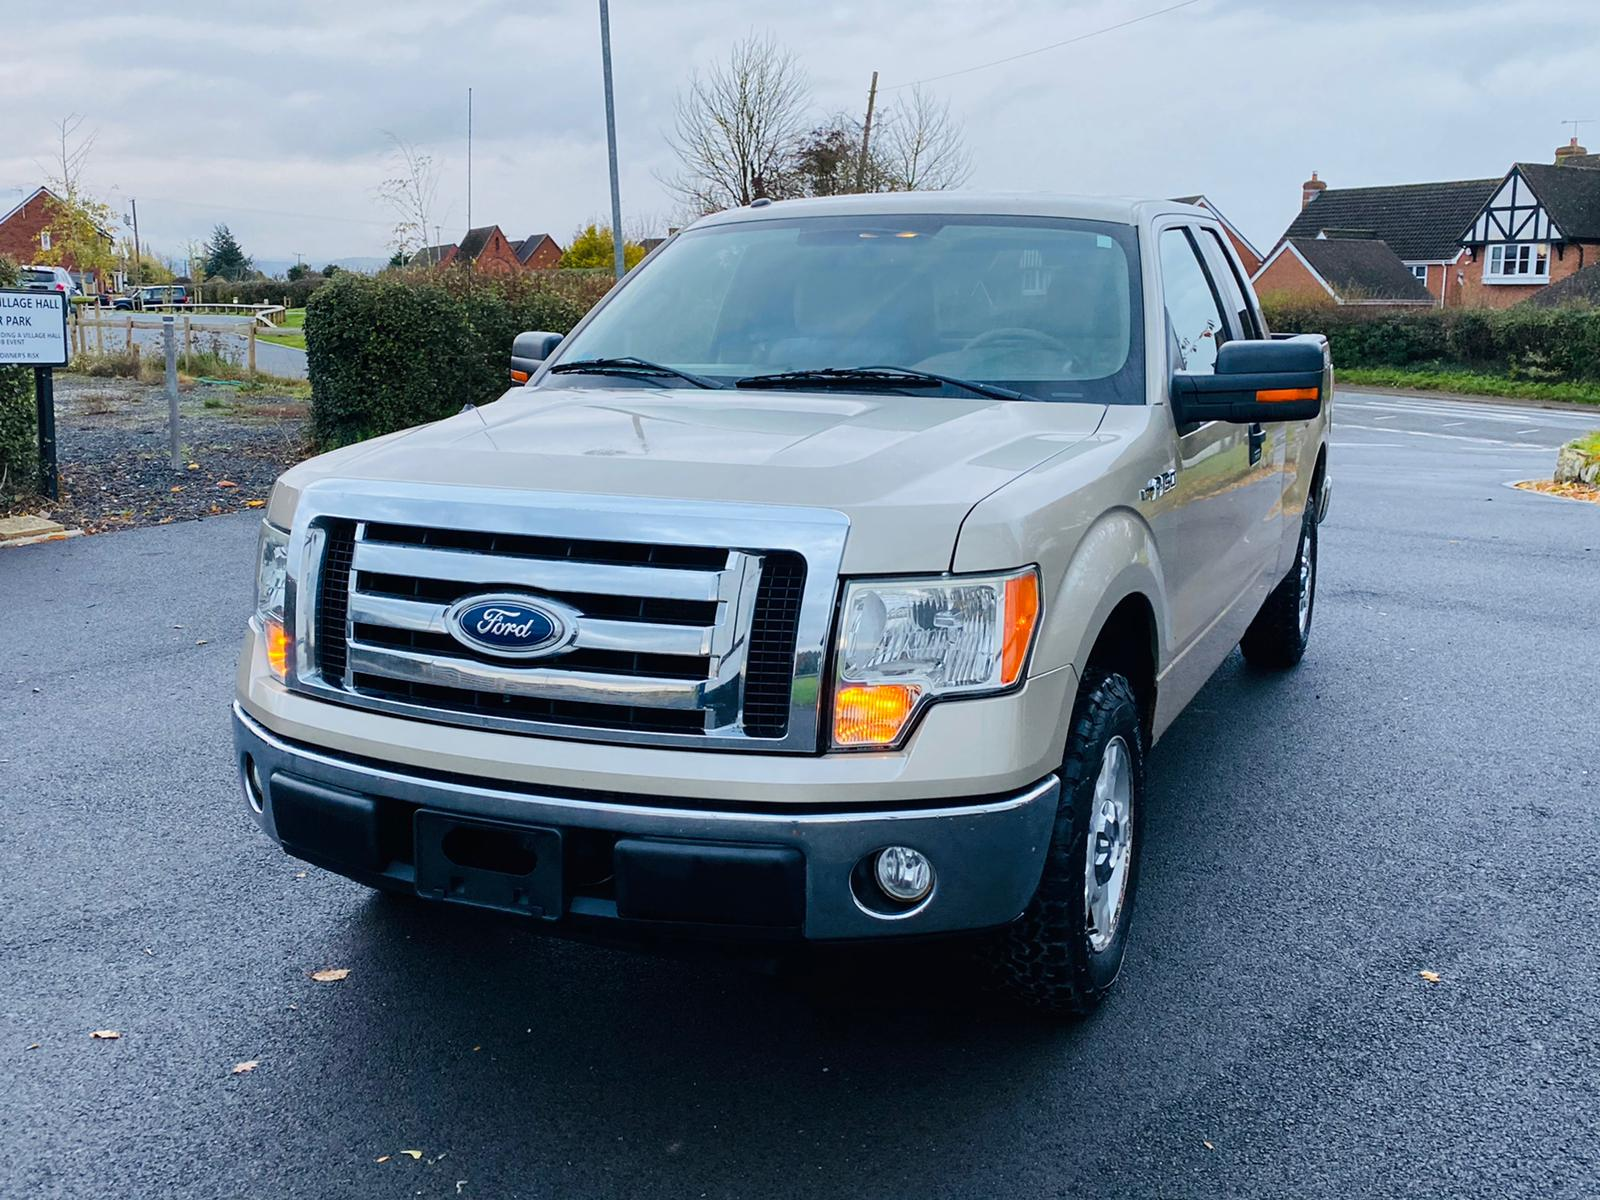 (RESERVE MET) Ford F-150 XLT 4.6L V8 Supercab - 2010 Year - 6 Seats - Fresh Imports - Image 10 of 39